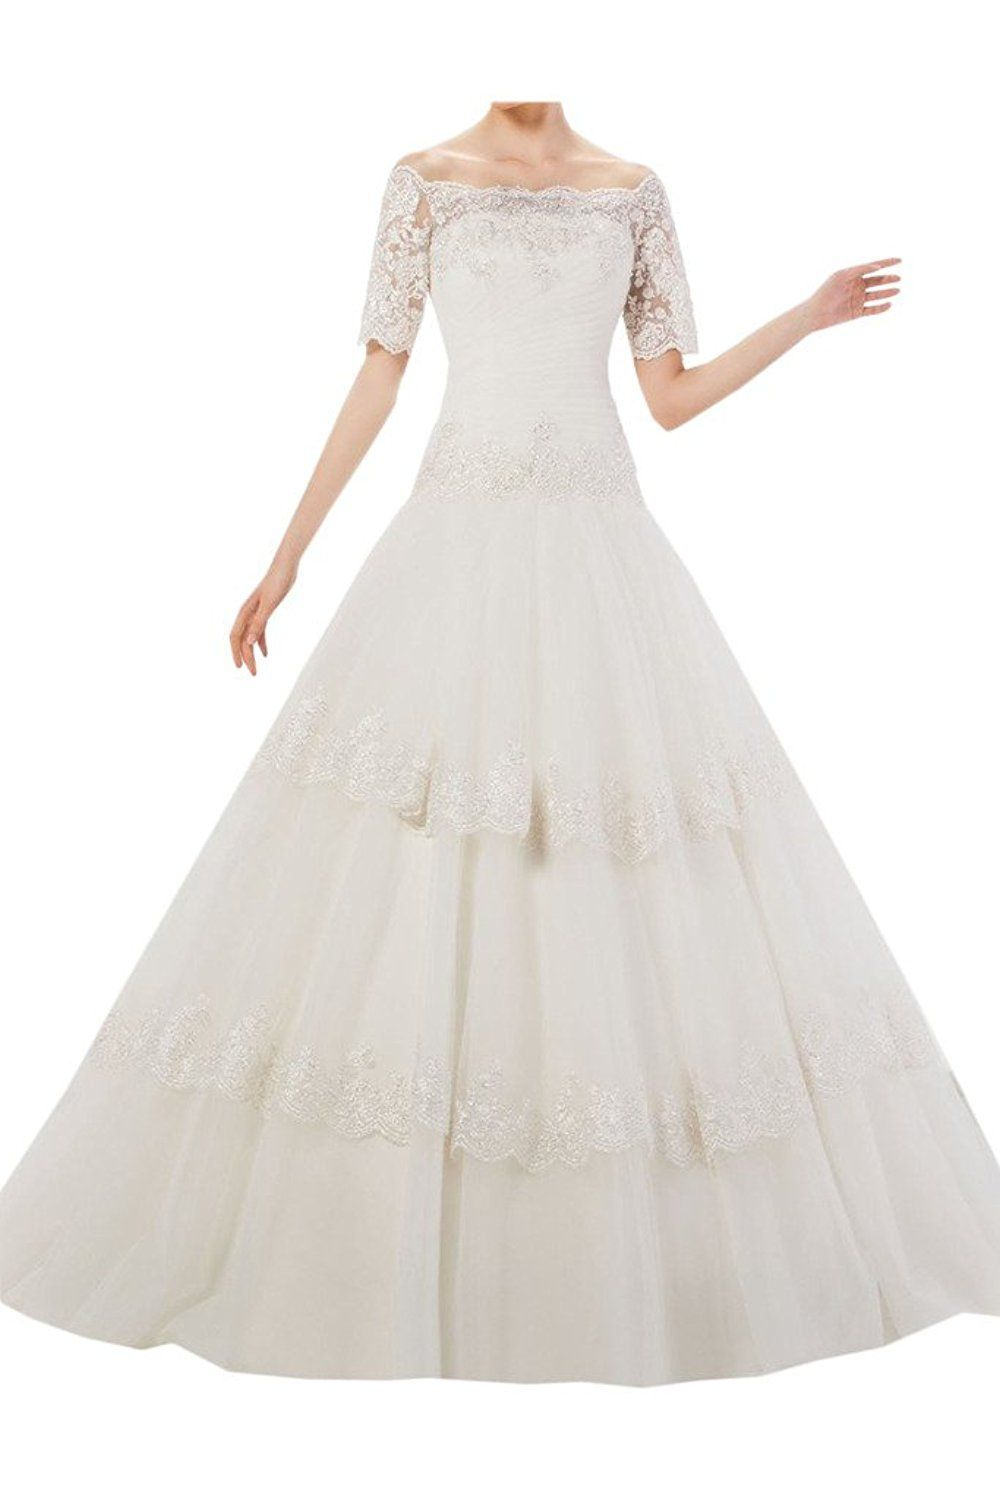 Ivydressing ball gown short sleeves lace wedding dress bridal gowns